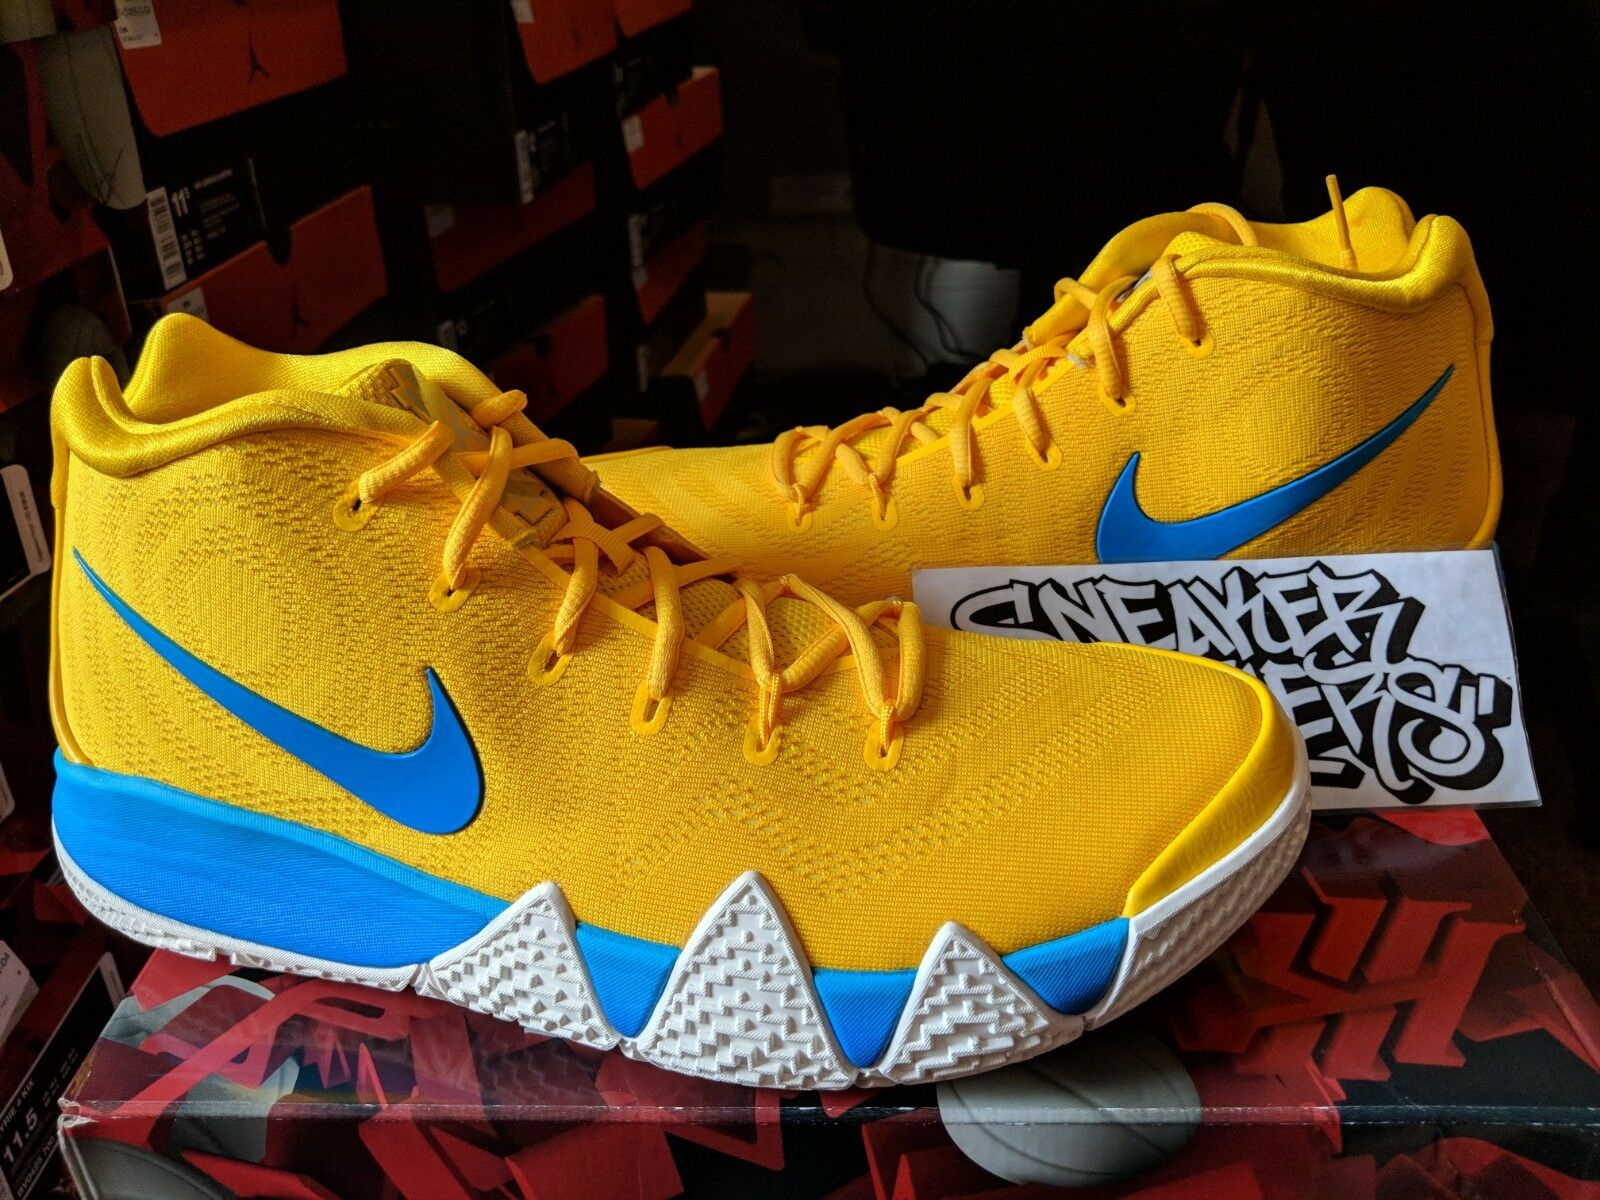 Nike Kyrie 4 IV Kix Amarillo Multi-Color Yellow Blue Cereal Pack BV0425-700